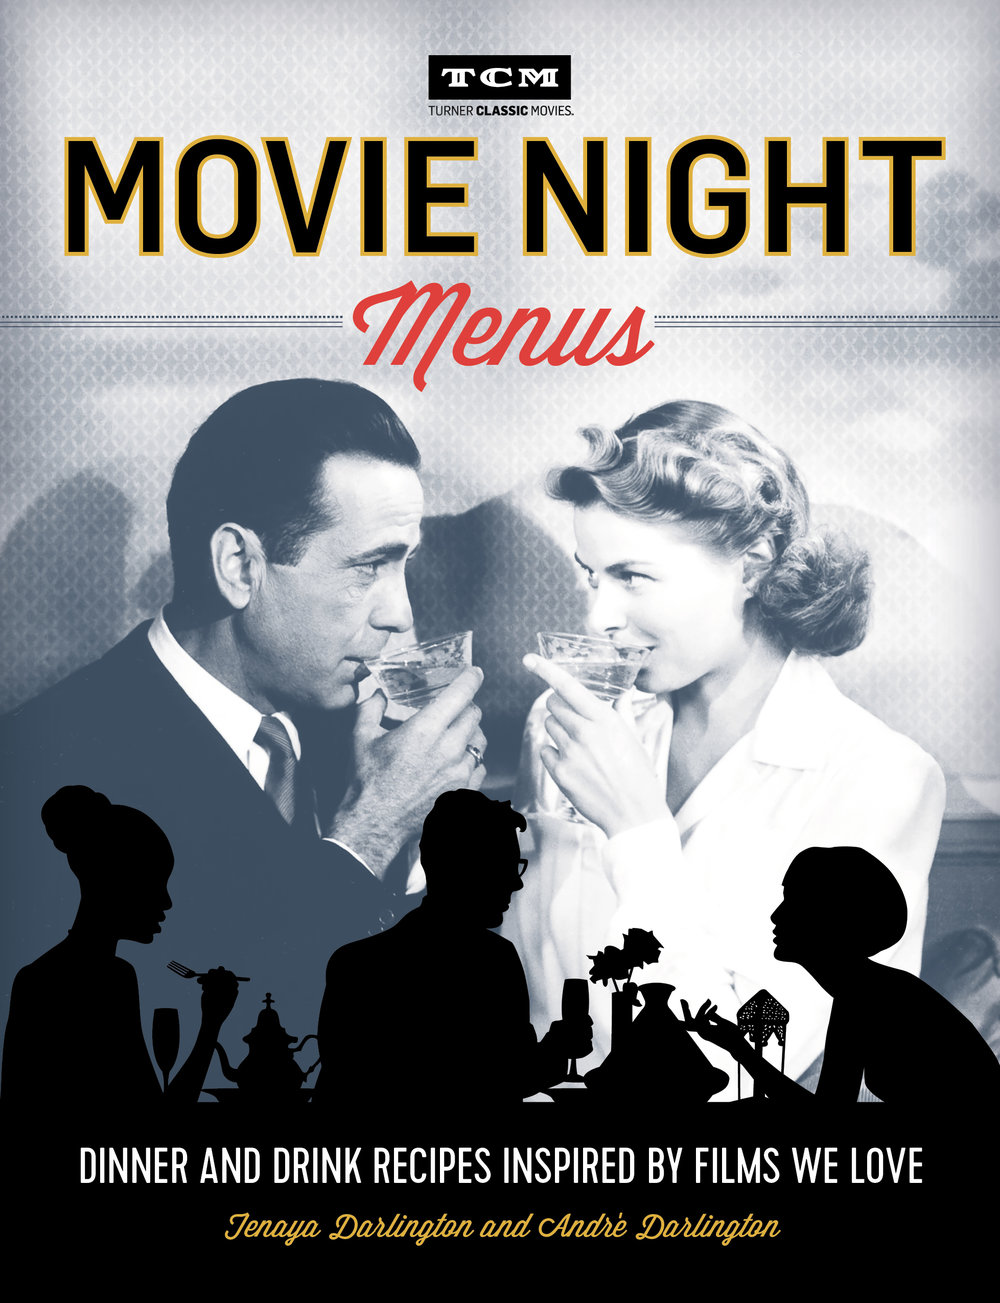 Movie Night Menus Cover Image by Tenaya Darlington and Andre Darlington